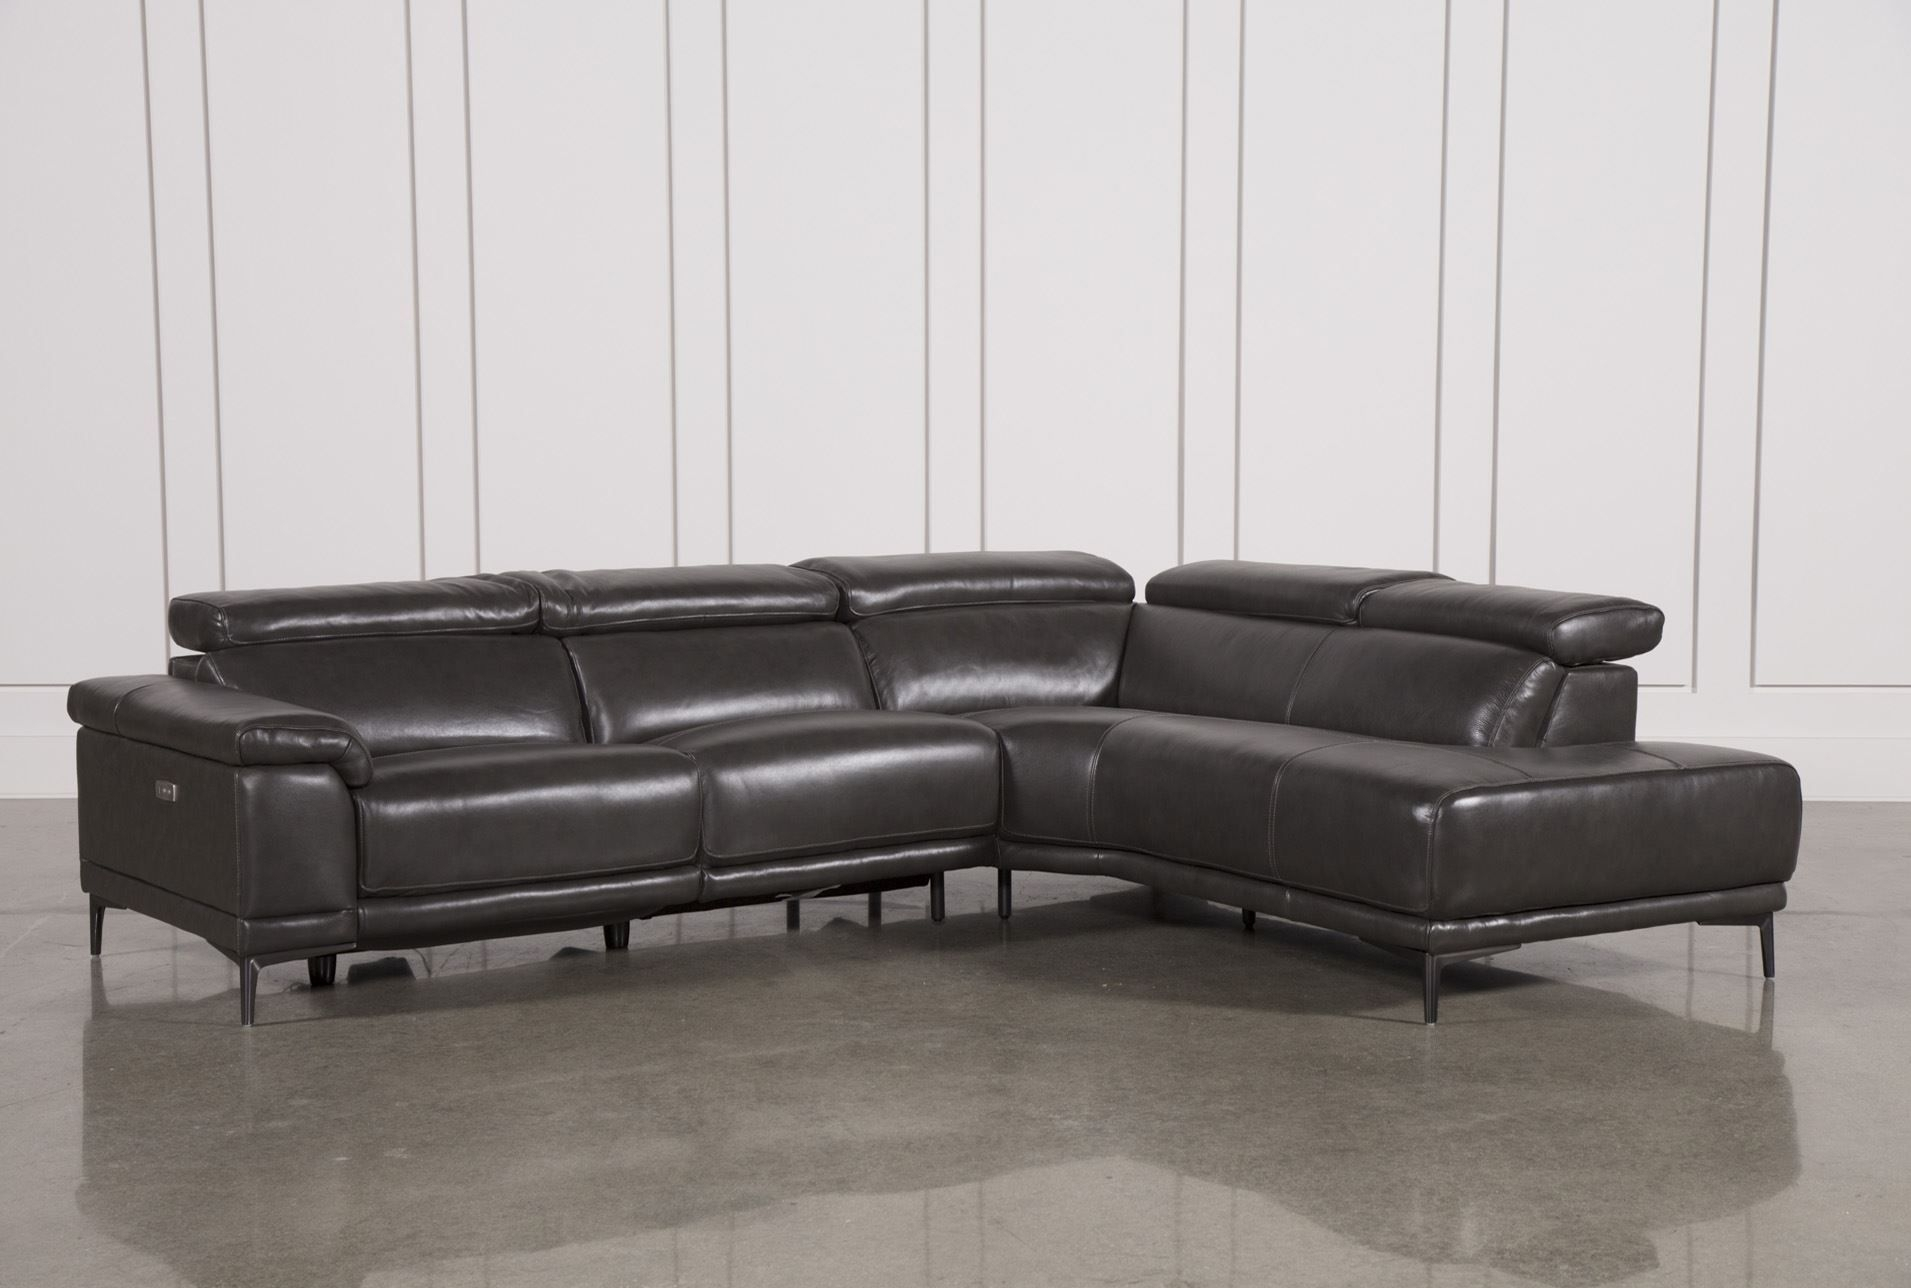 Tatum Dark Grey 2 Piece Sectional W/raf Chaise | New Apt | Pinterest pertaining to Josephine 2 Piece Sectionals With Raf Sofa (Image 28 of 30)